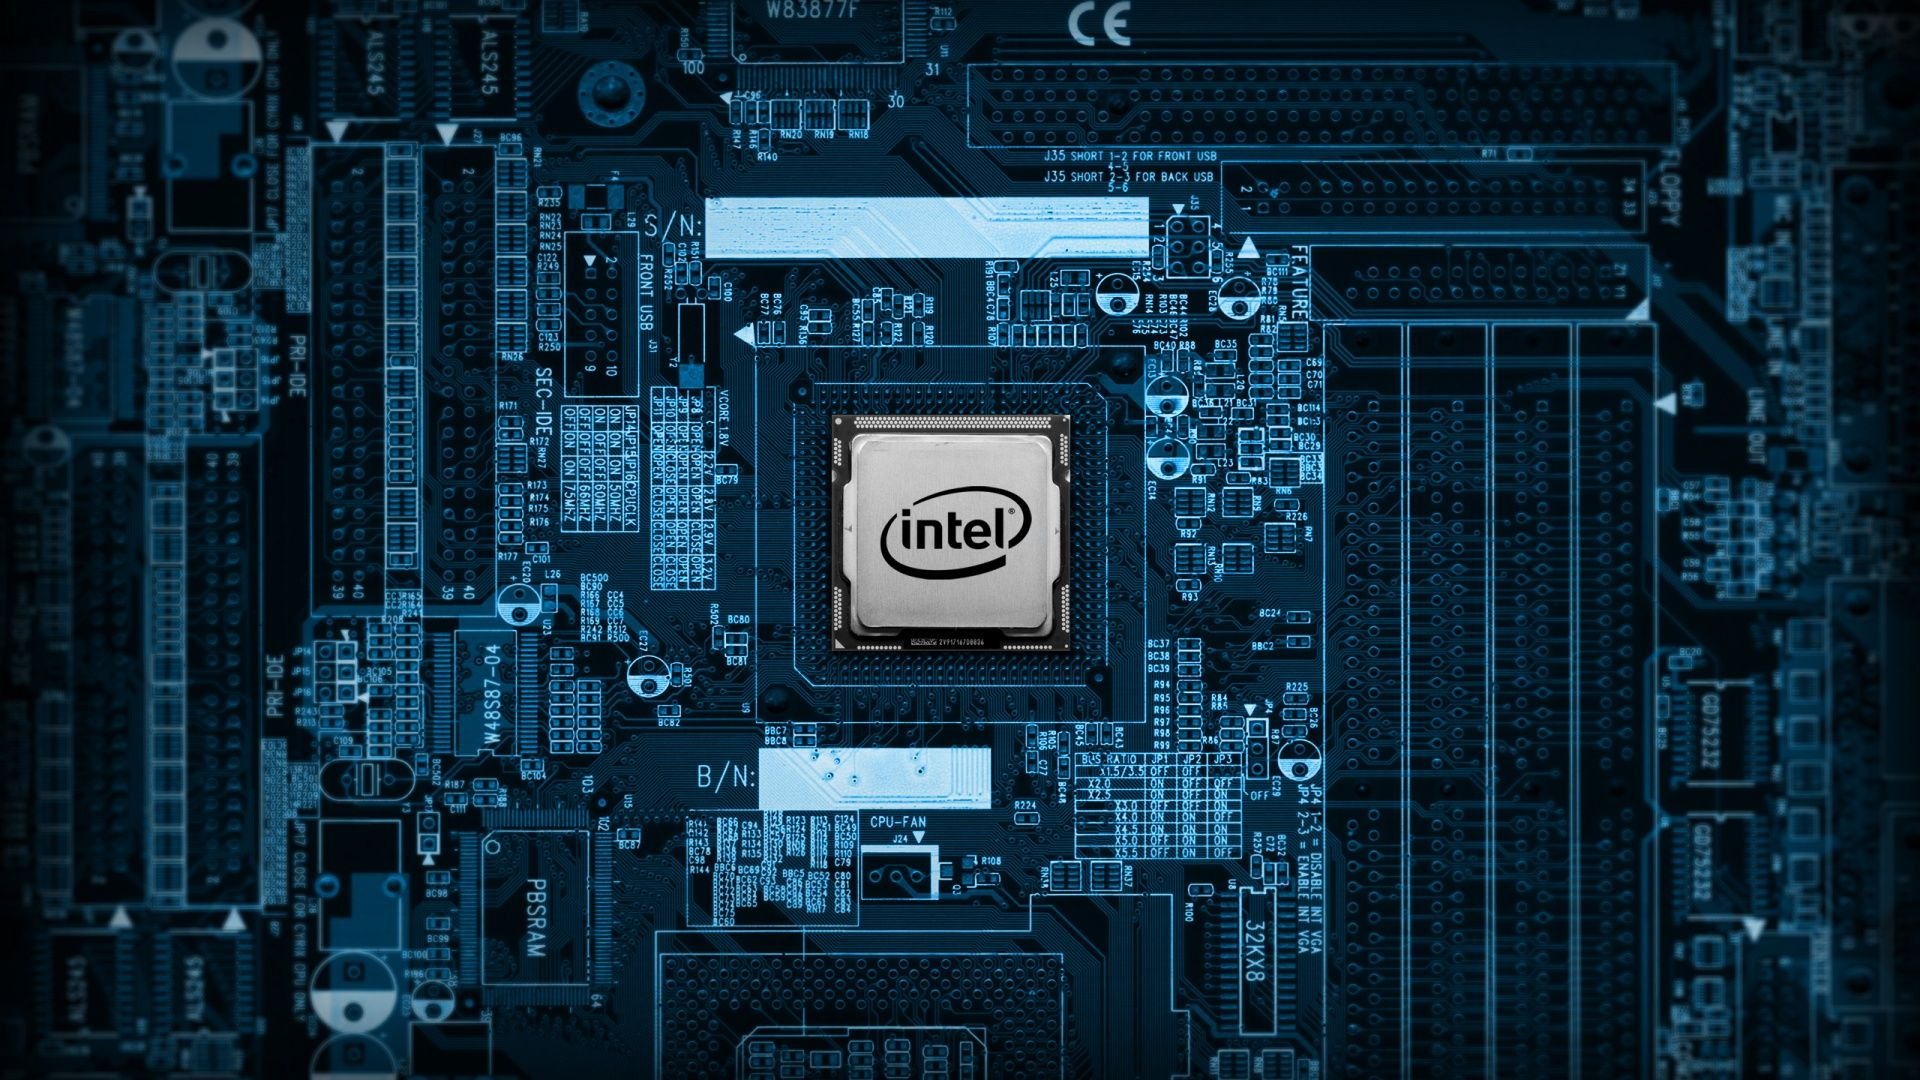 Intel Background - Praxi Ltd - Πραξη ΕΠΕ